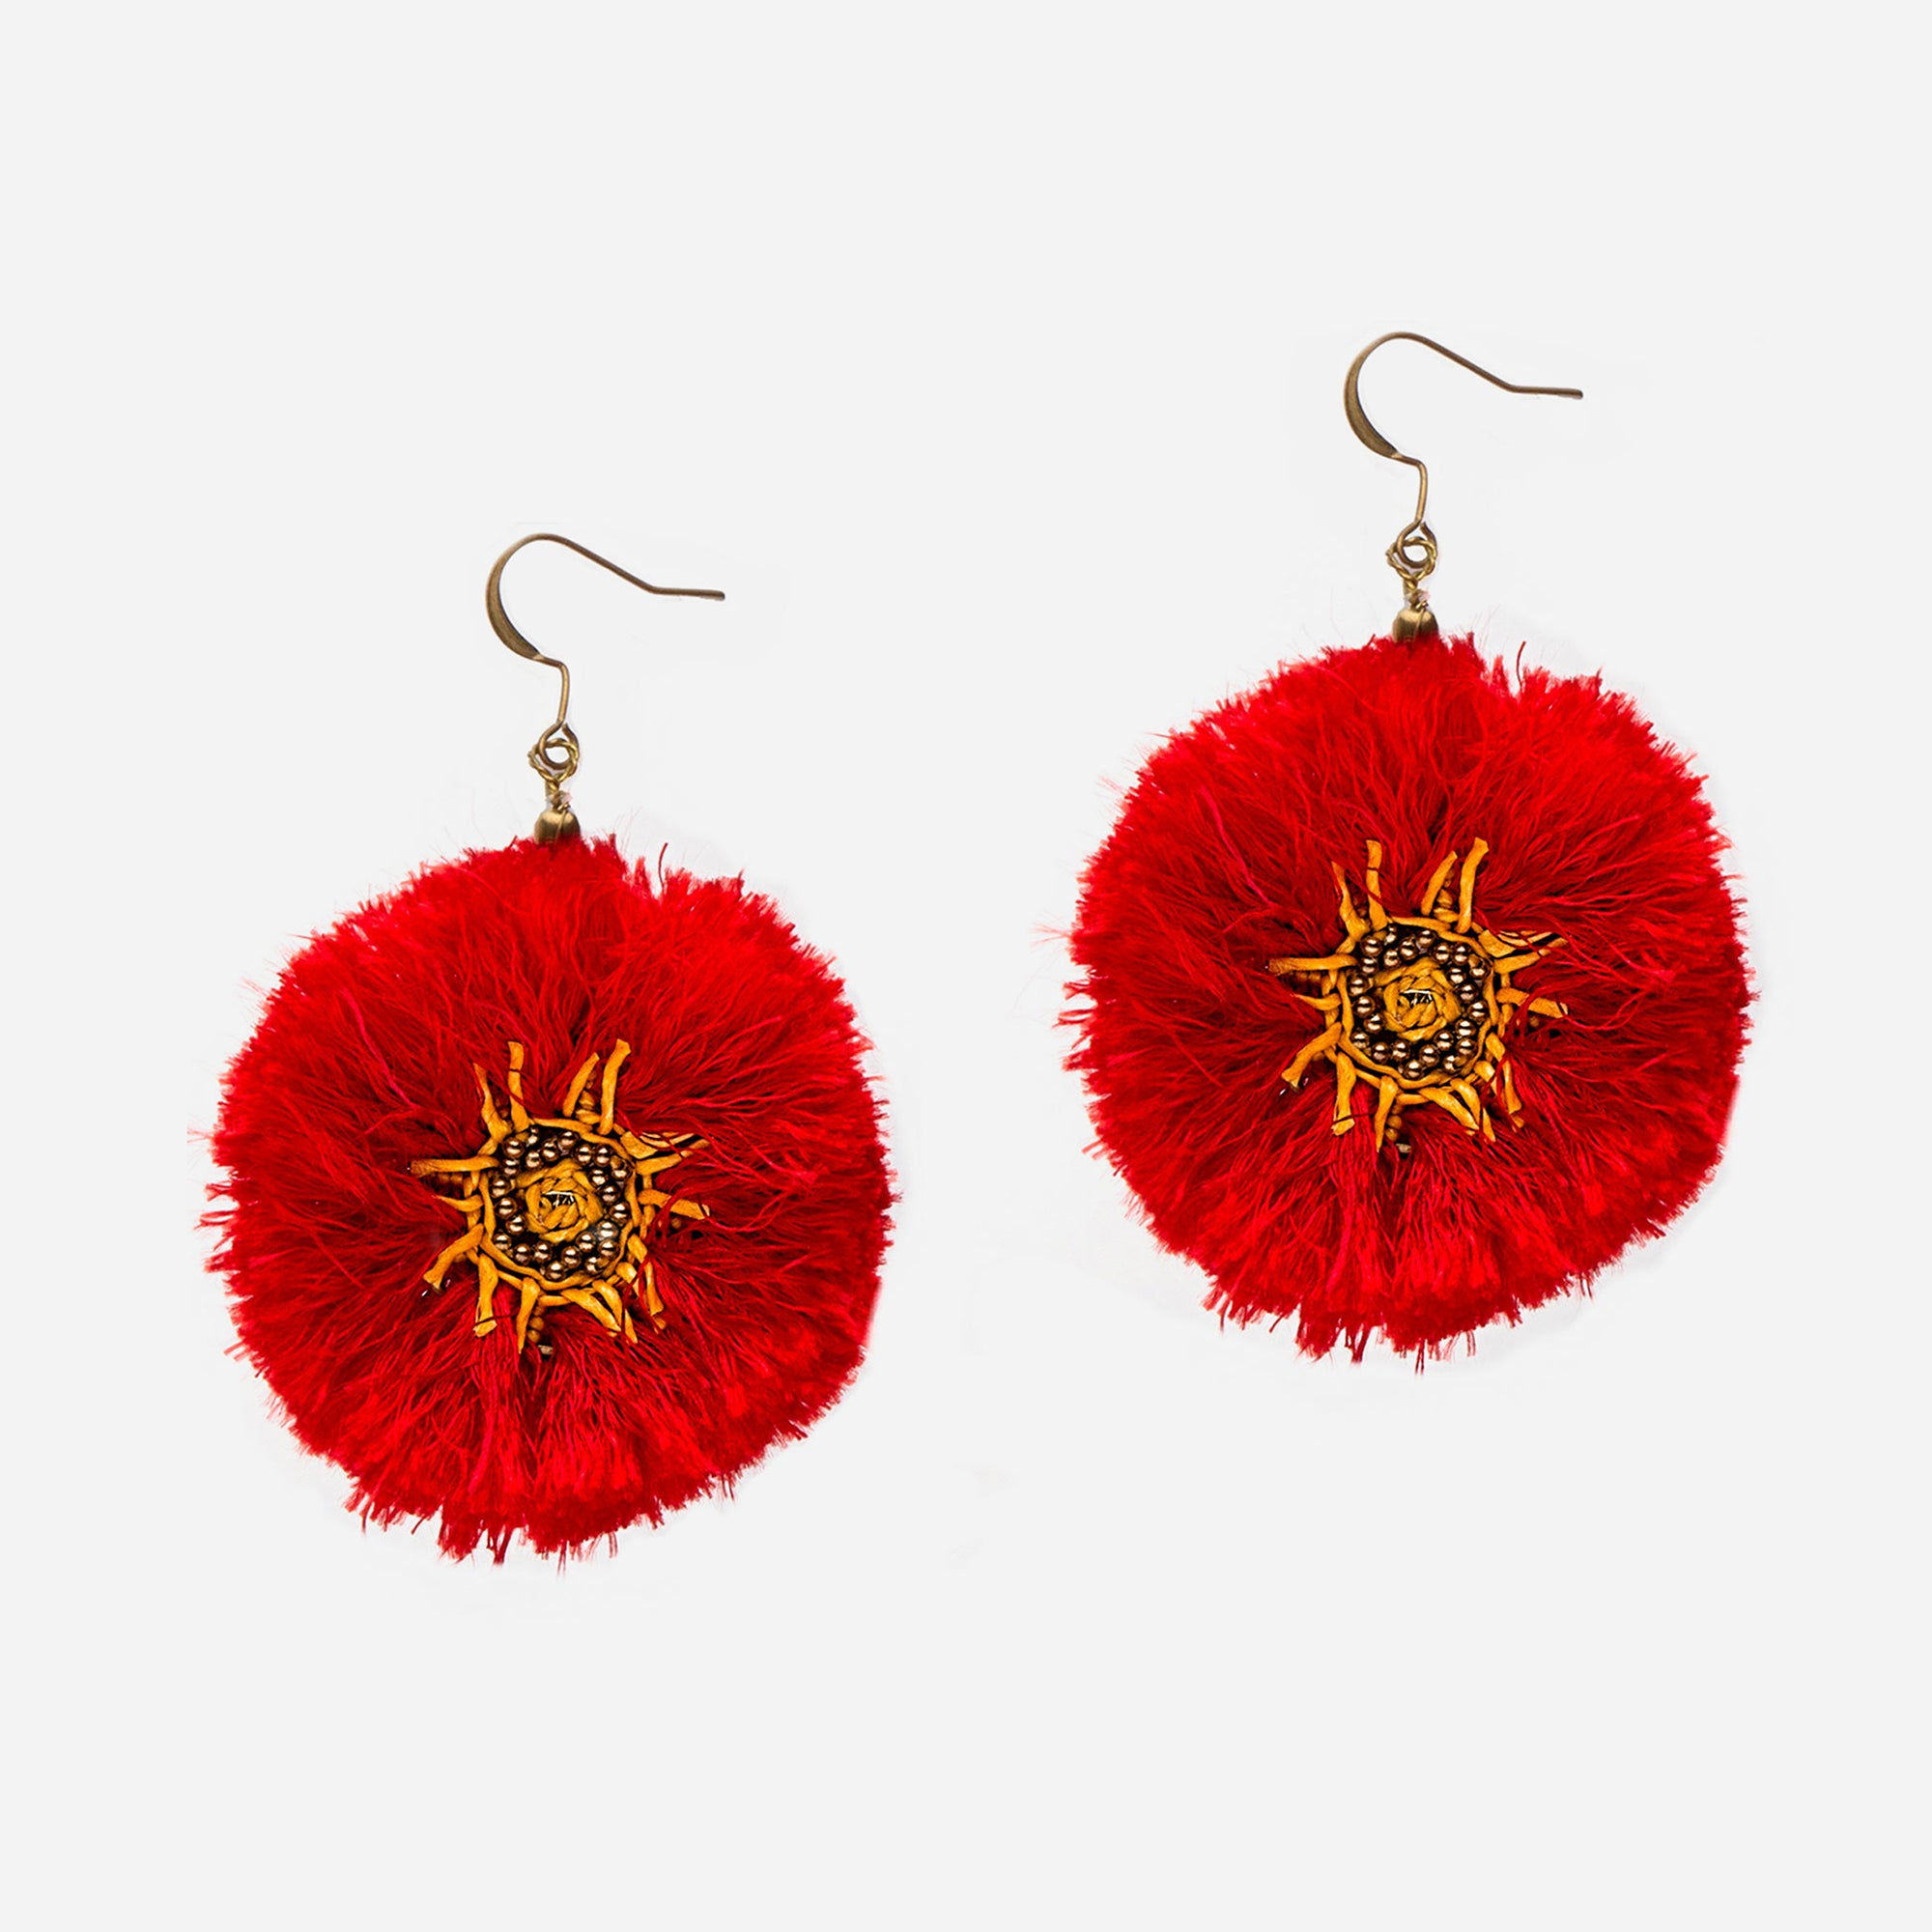 Bali fringe earrings